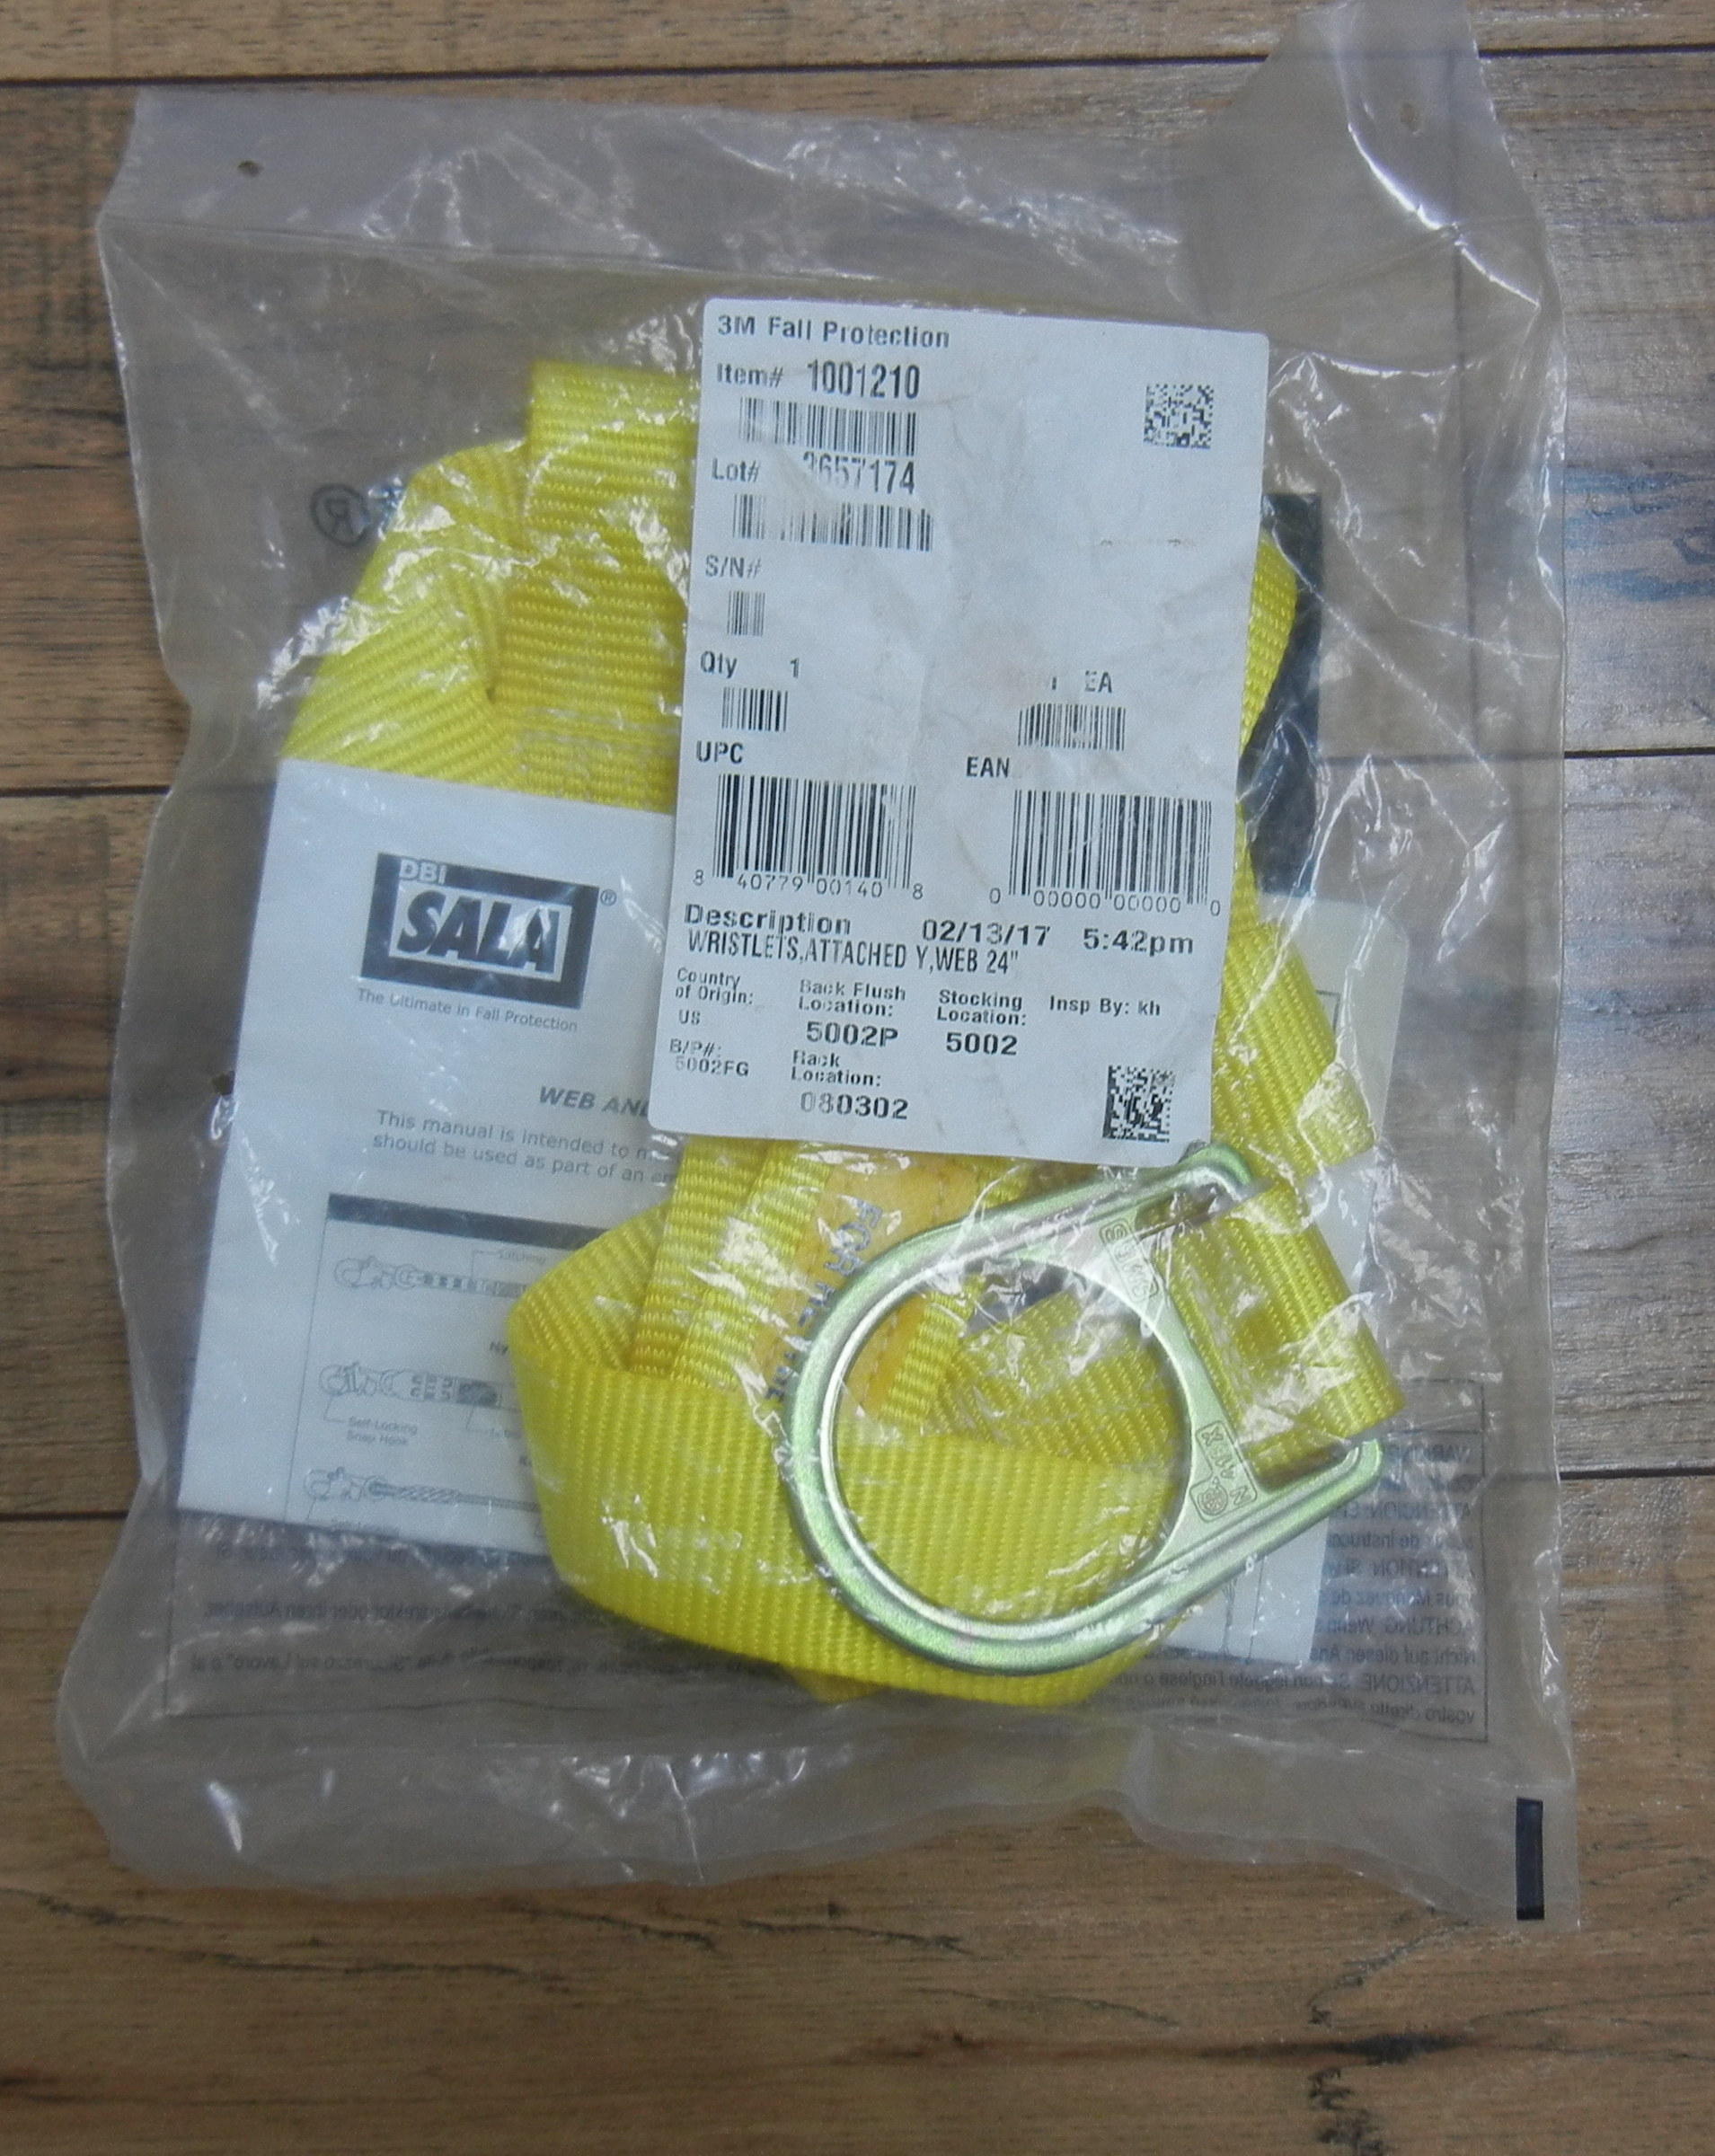 DBI - SALA - BEAM STRAP - BRAND NEW IN SEALED BAG